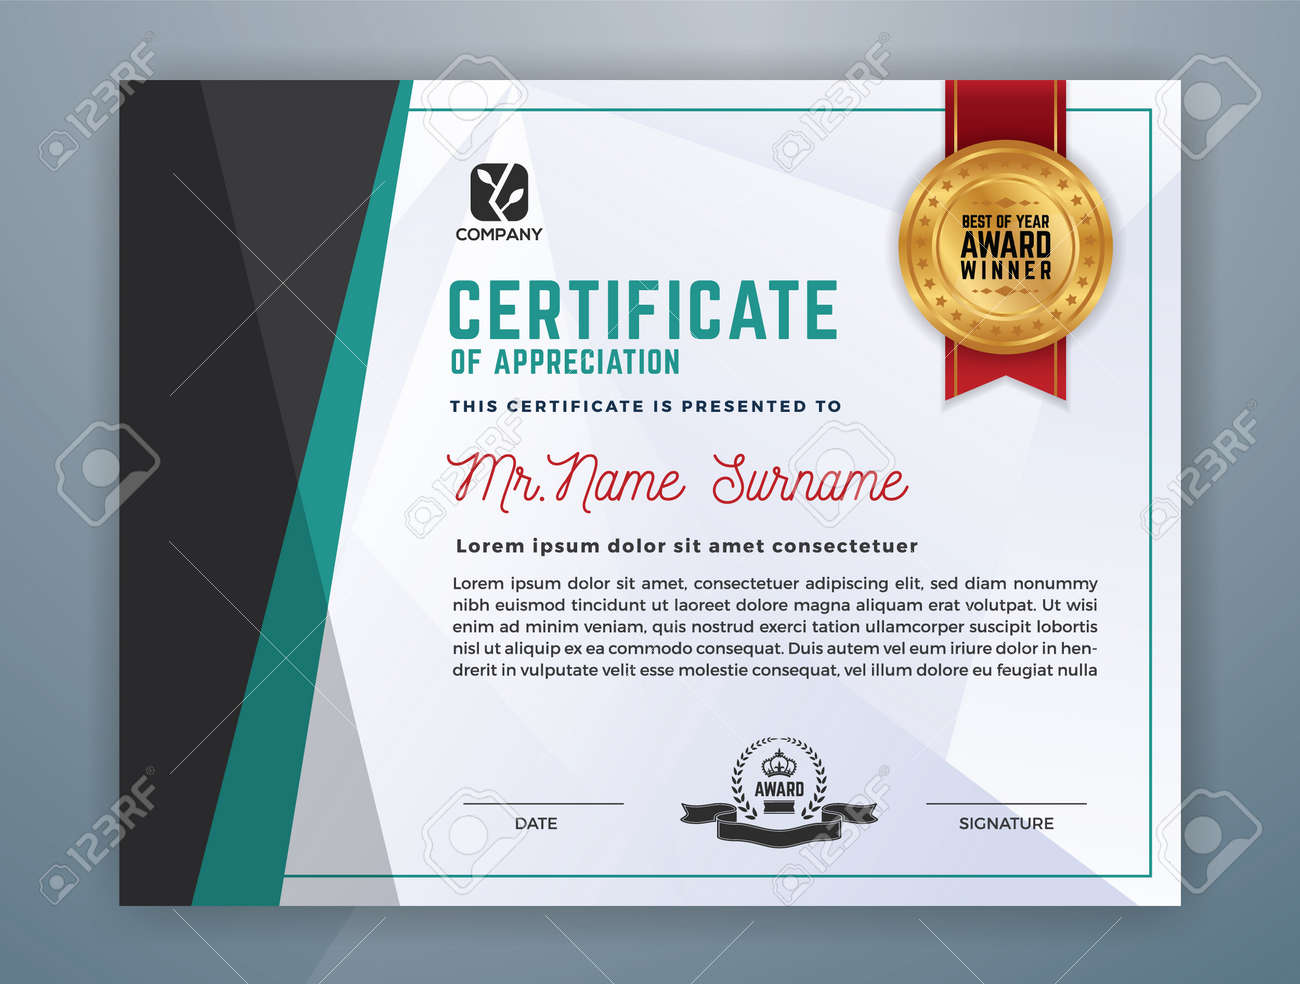 Corporate Share Certificate Template Image collections - Templates ...